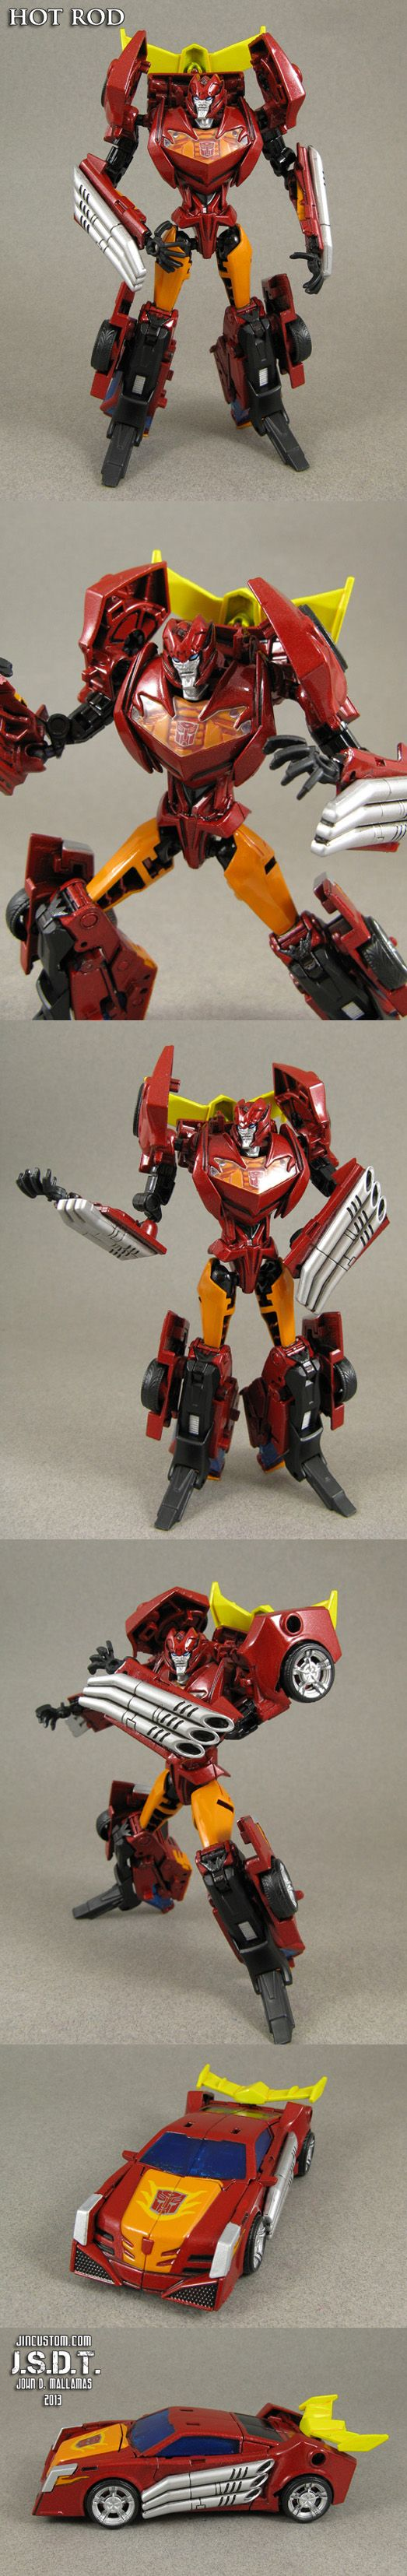 Custom Transformers Prime Hot Rod Figure by *Jin-Saotome on deviantART